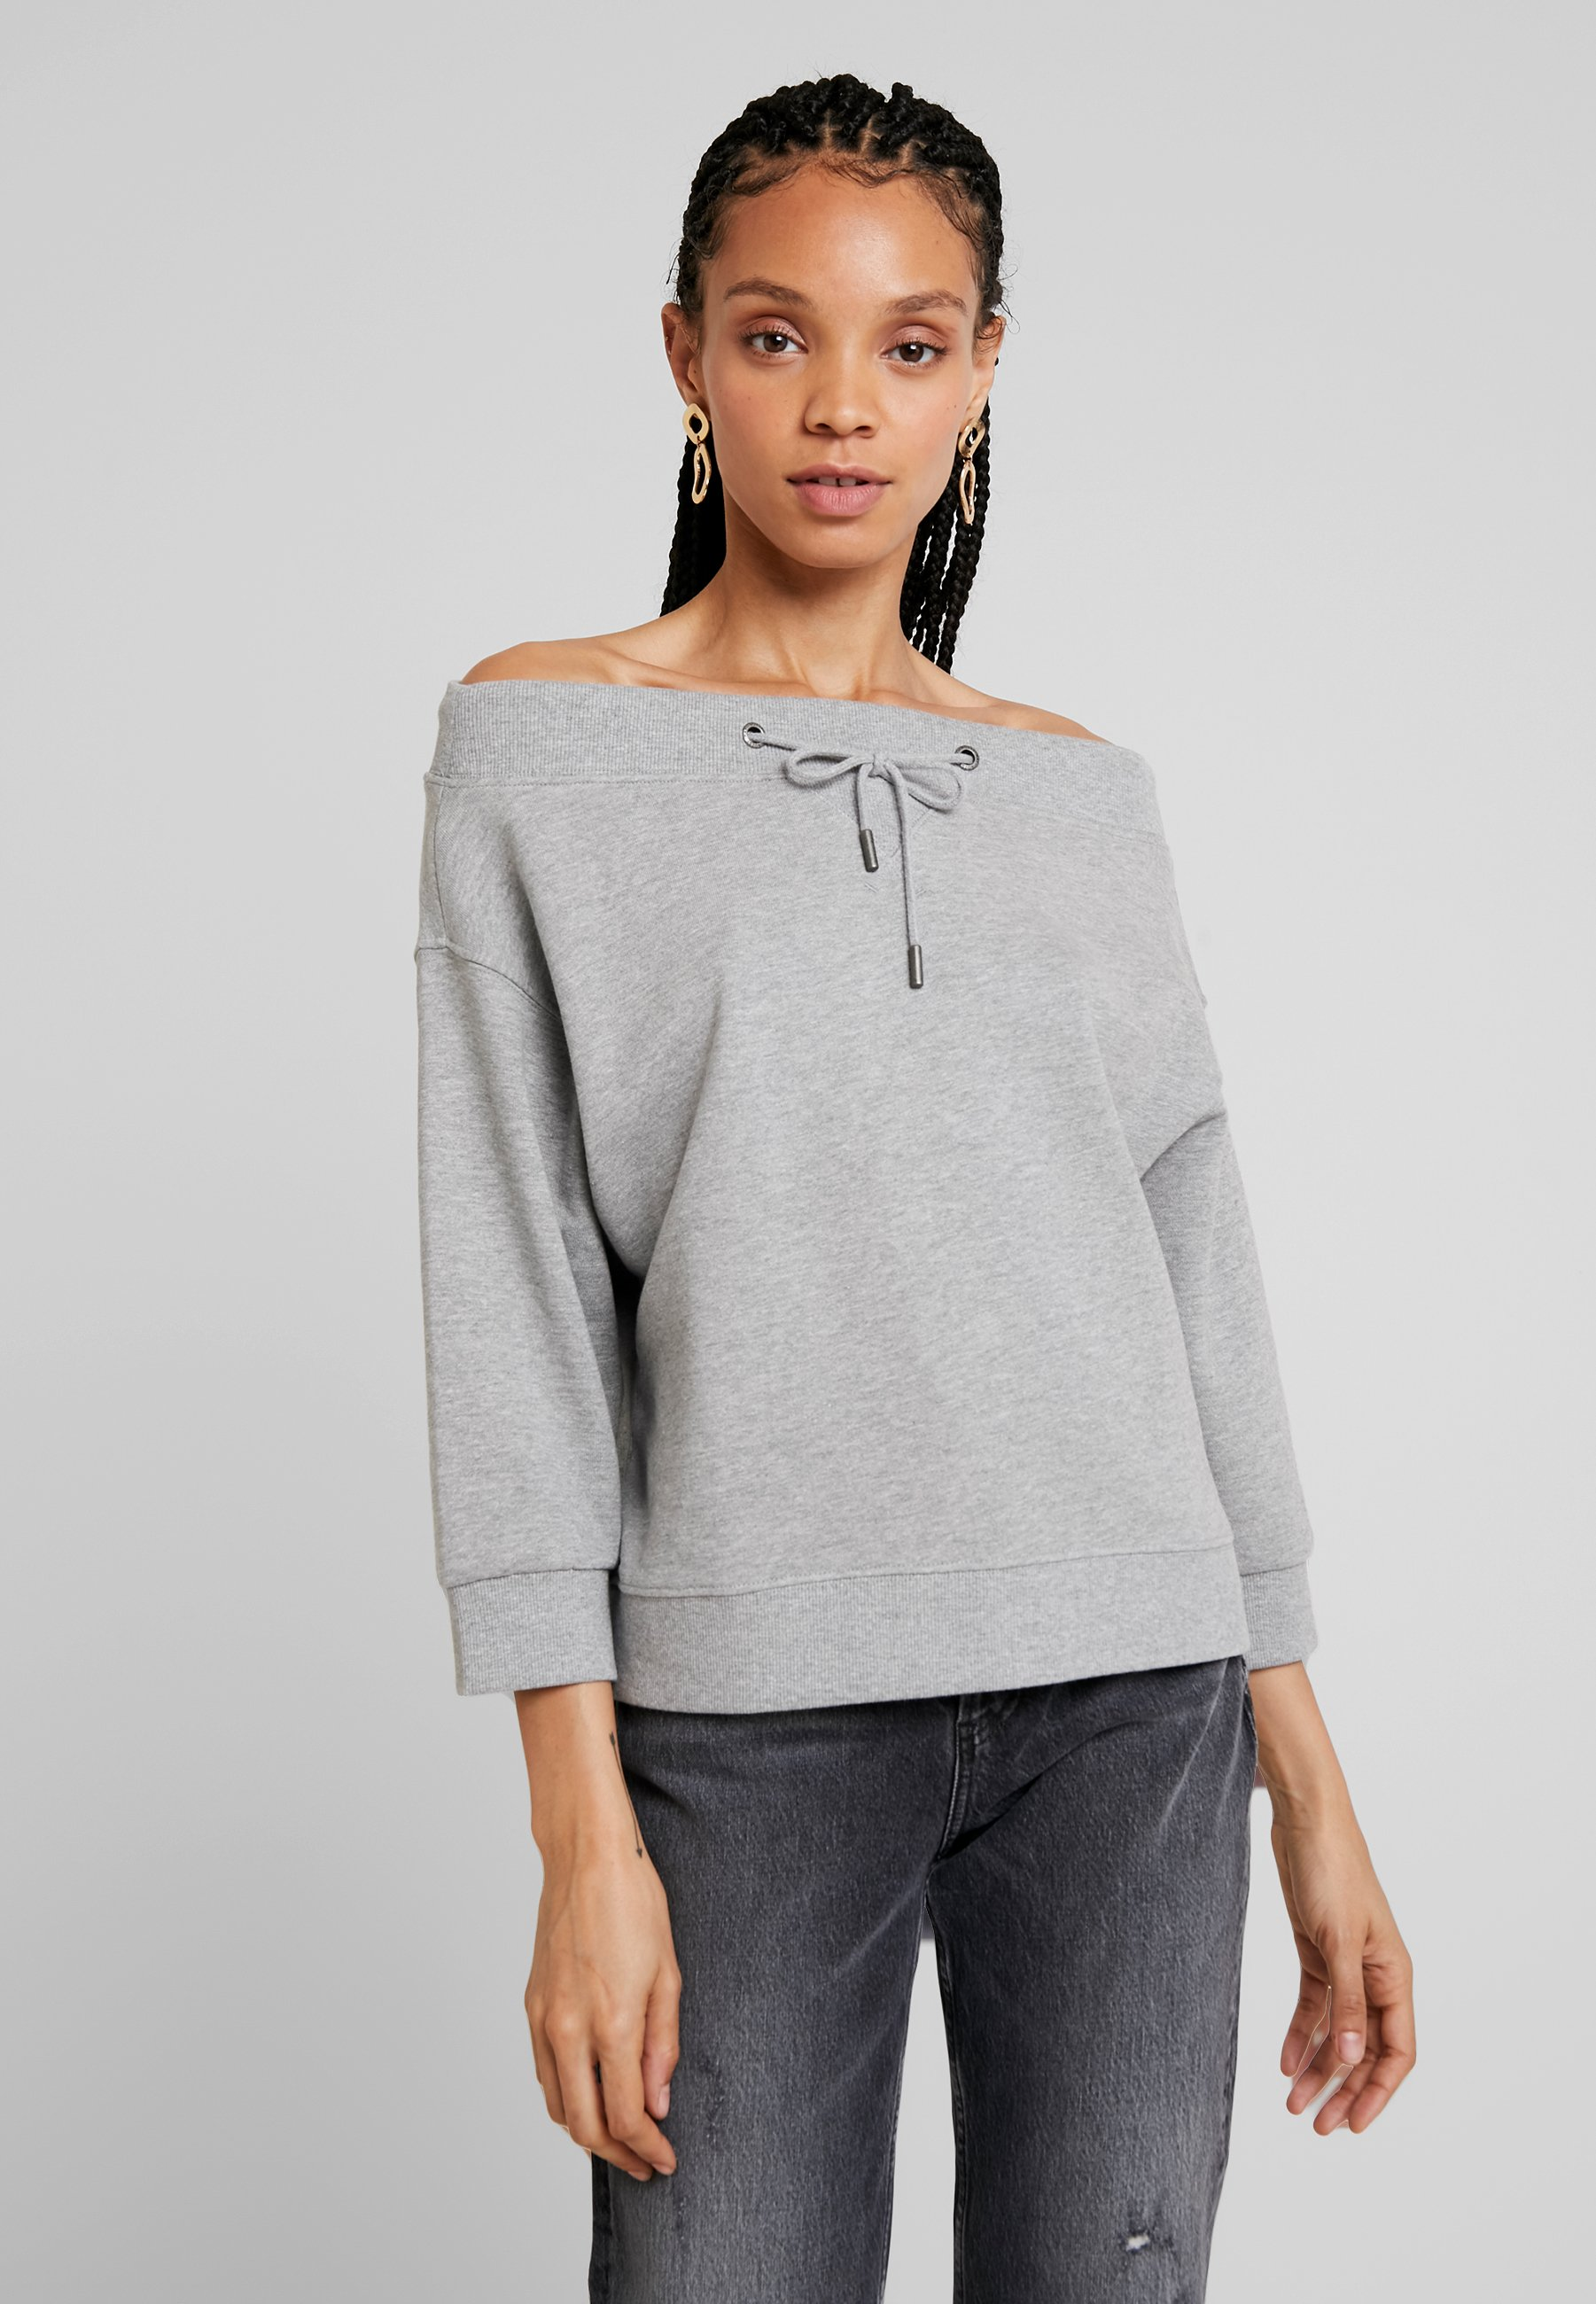 Noisy Melange May Light OneshoulderSweatshirt Grey Nmlife WE92IDH